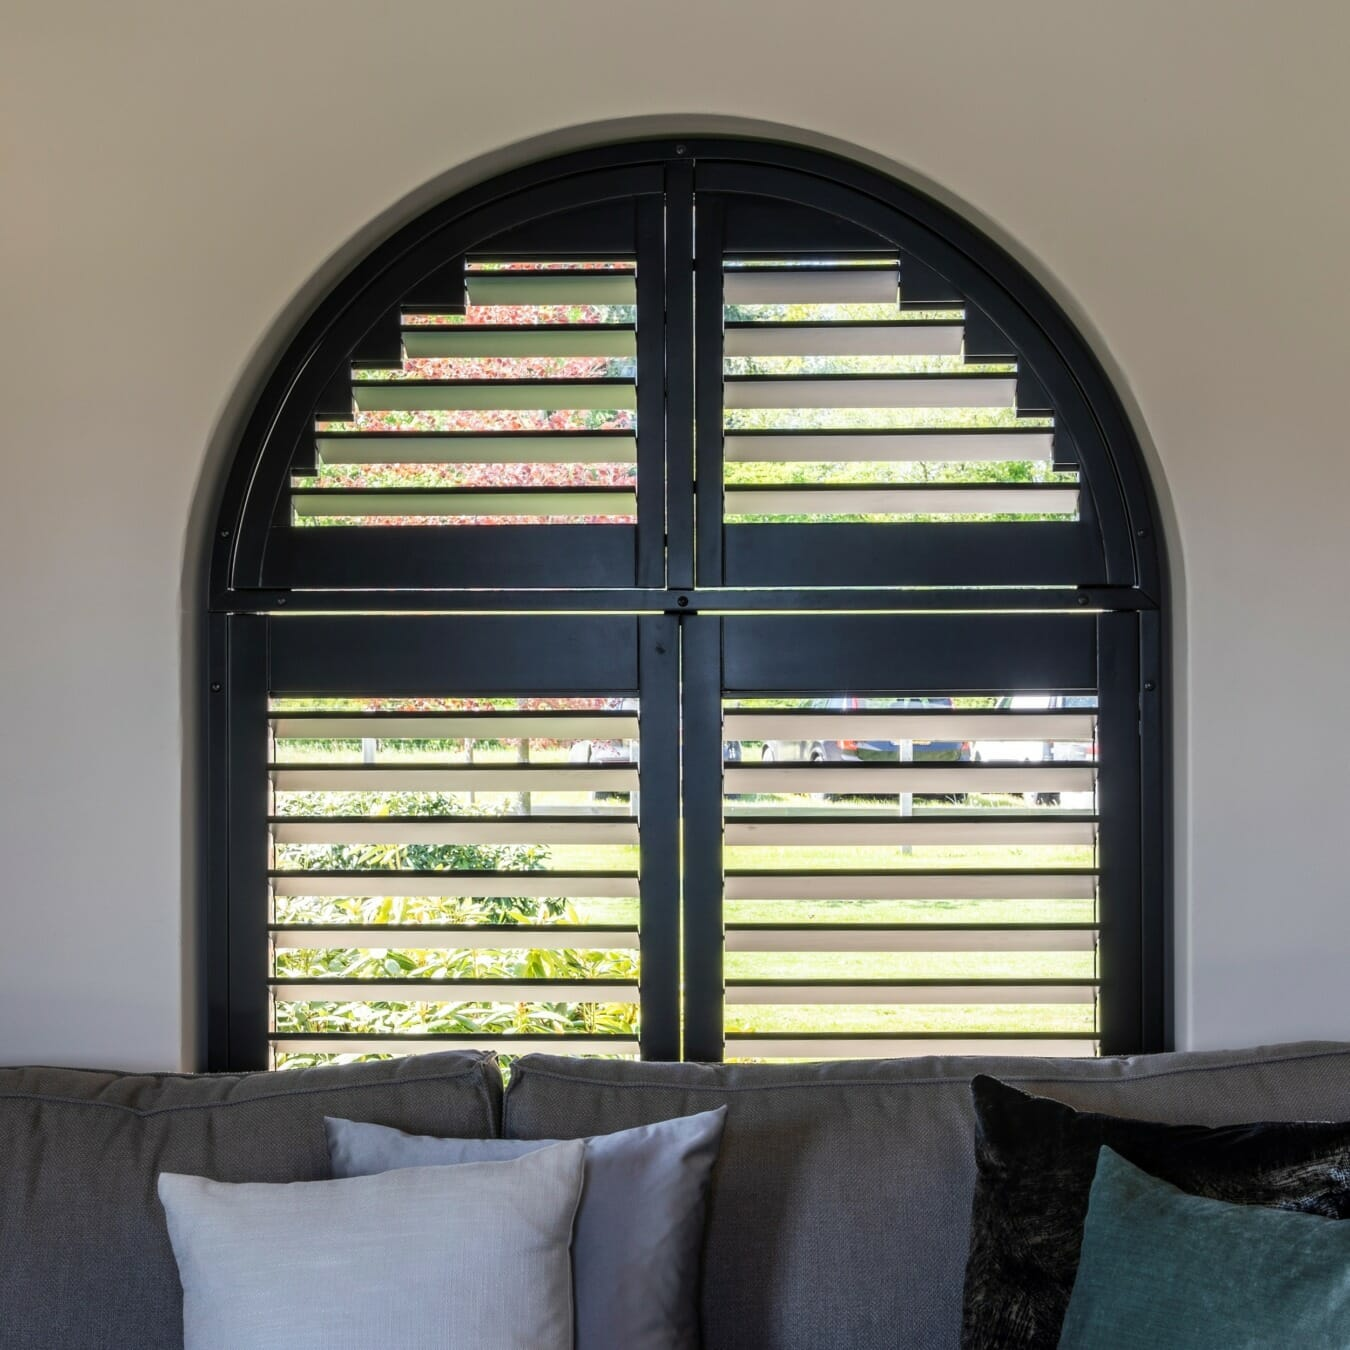 Boograam Piet Boon shutters